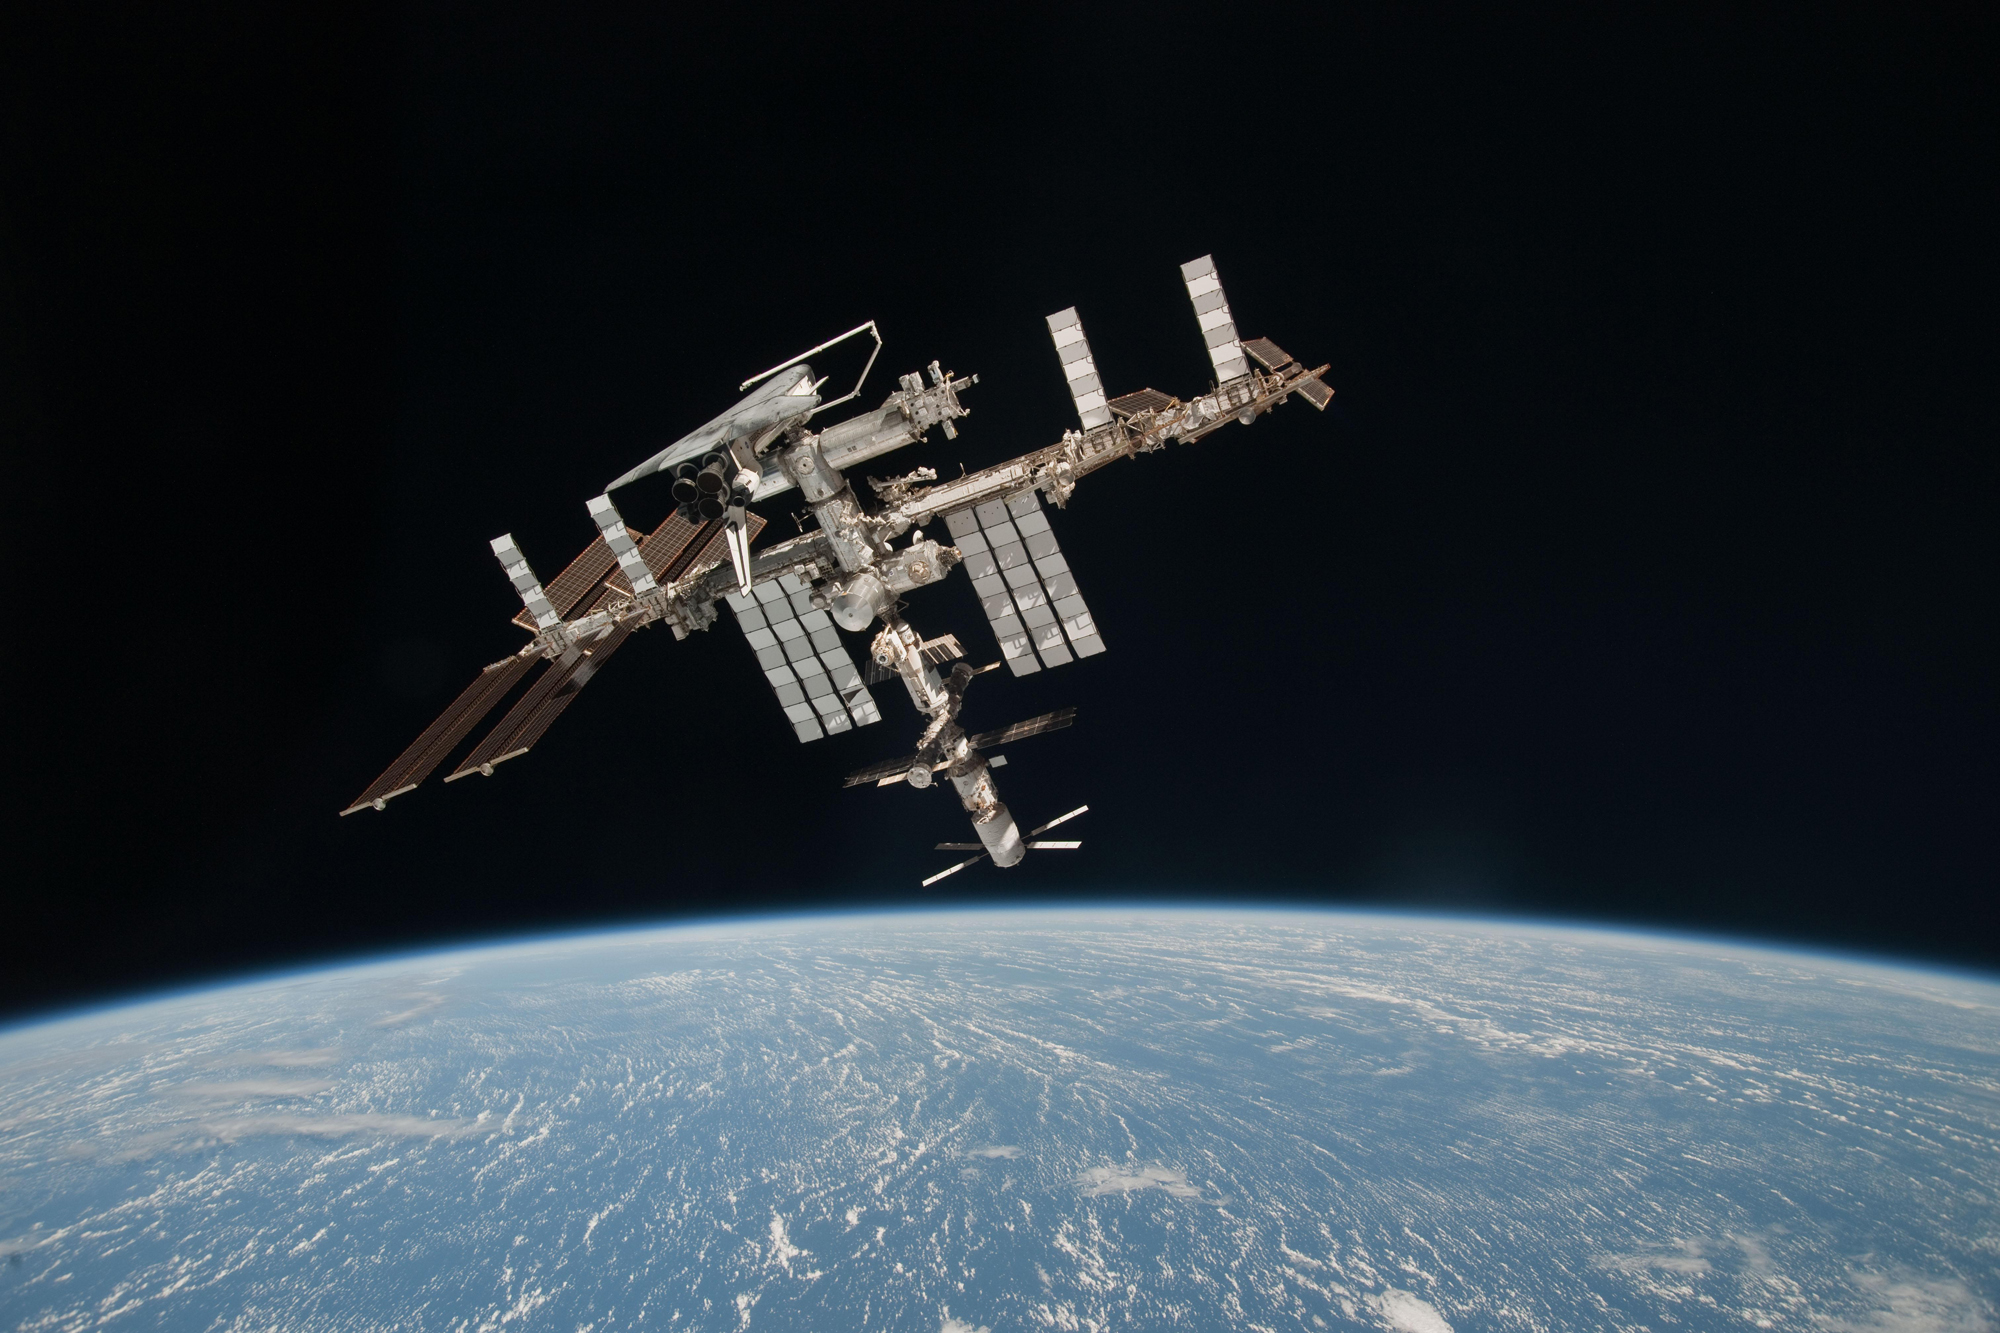 Amazing Photos: Shuttle Endeavour at Space Station